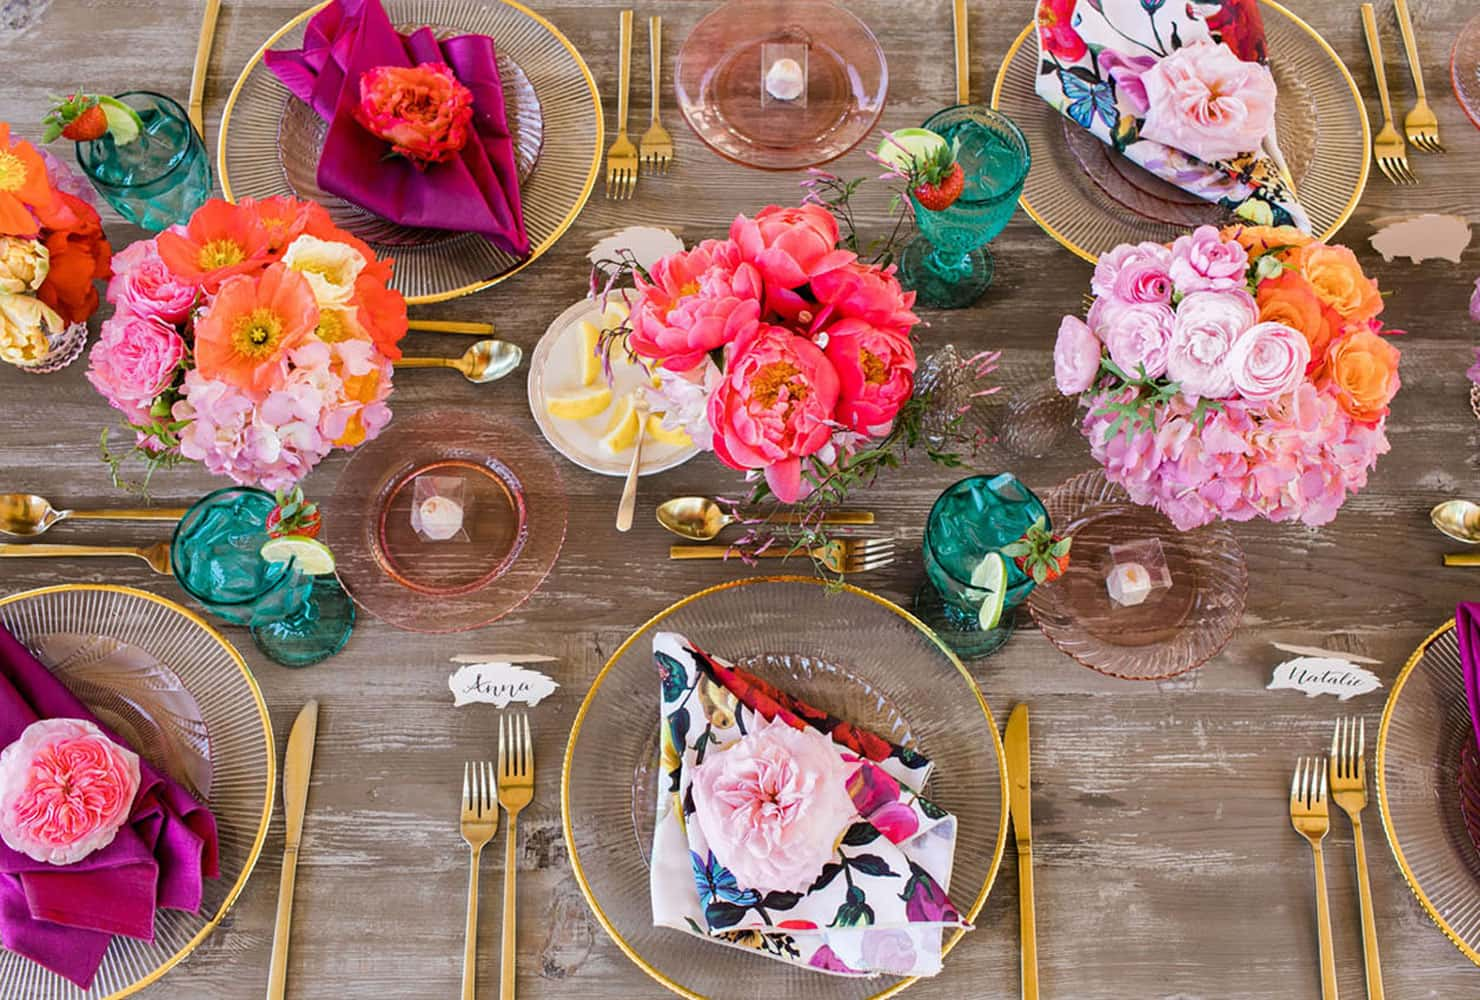 Wood table with bright florals and colorful napkins and drinkware